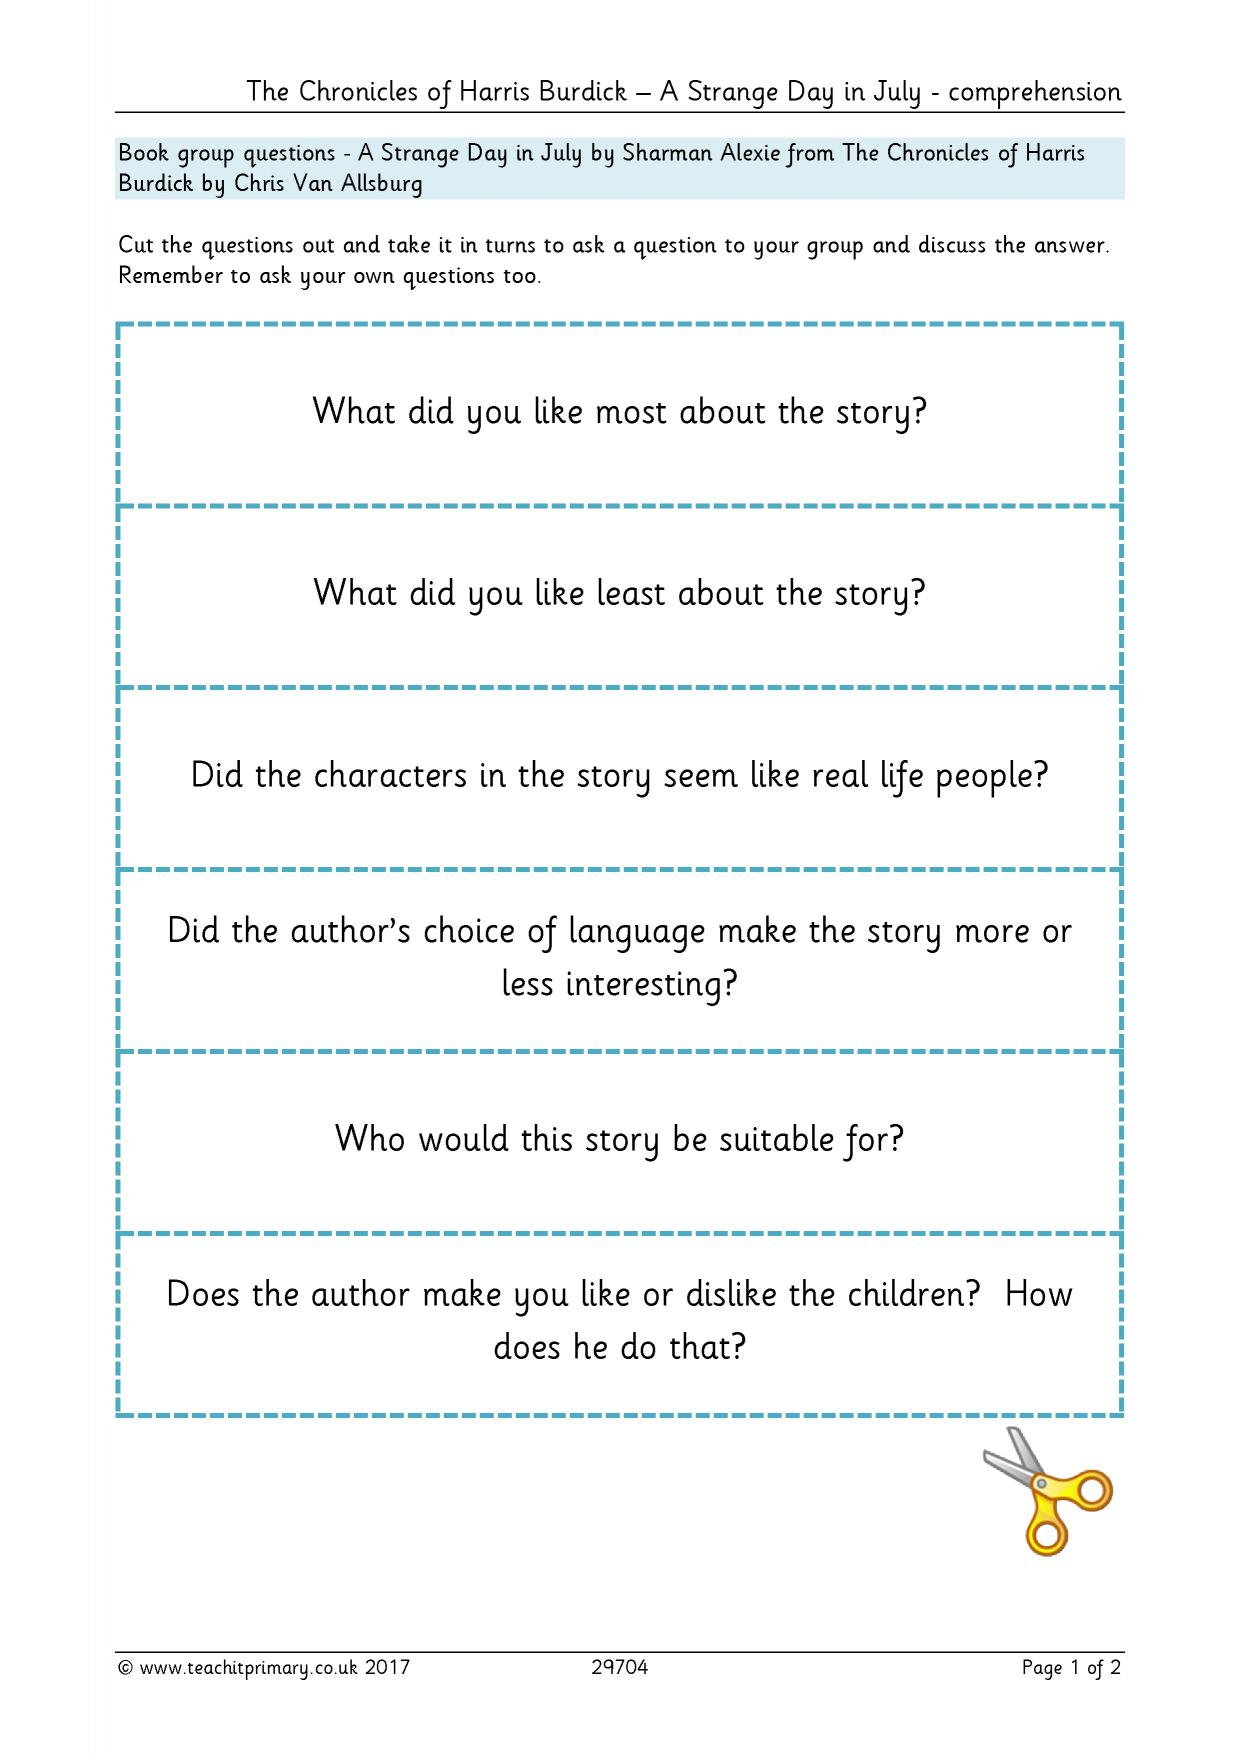 - KS2 Reading Comprehension Resources - Teachit Primary